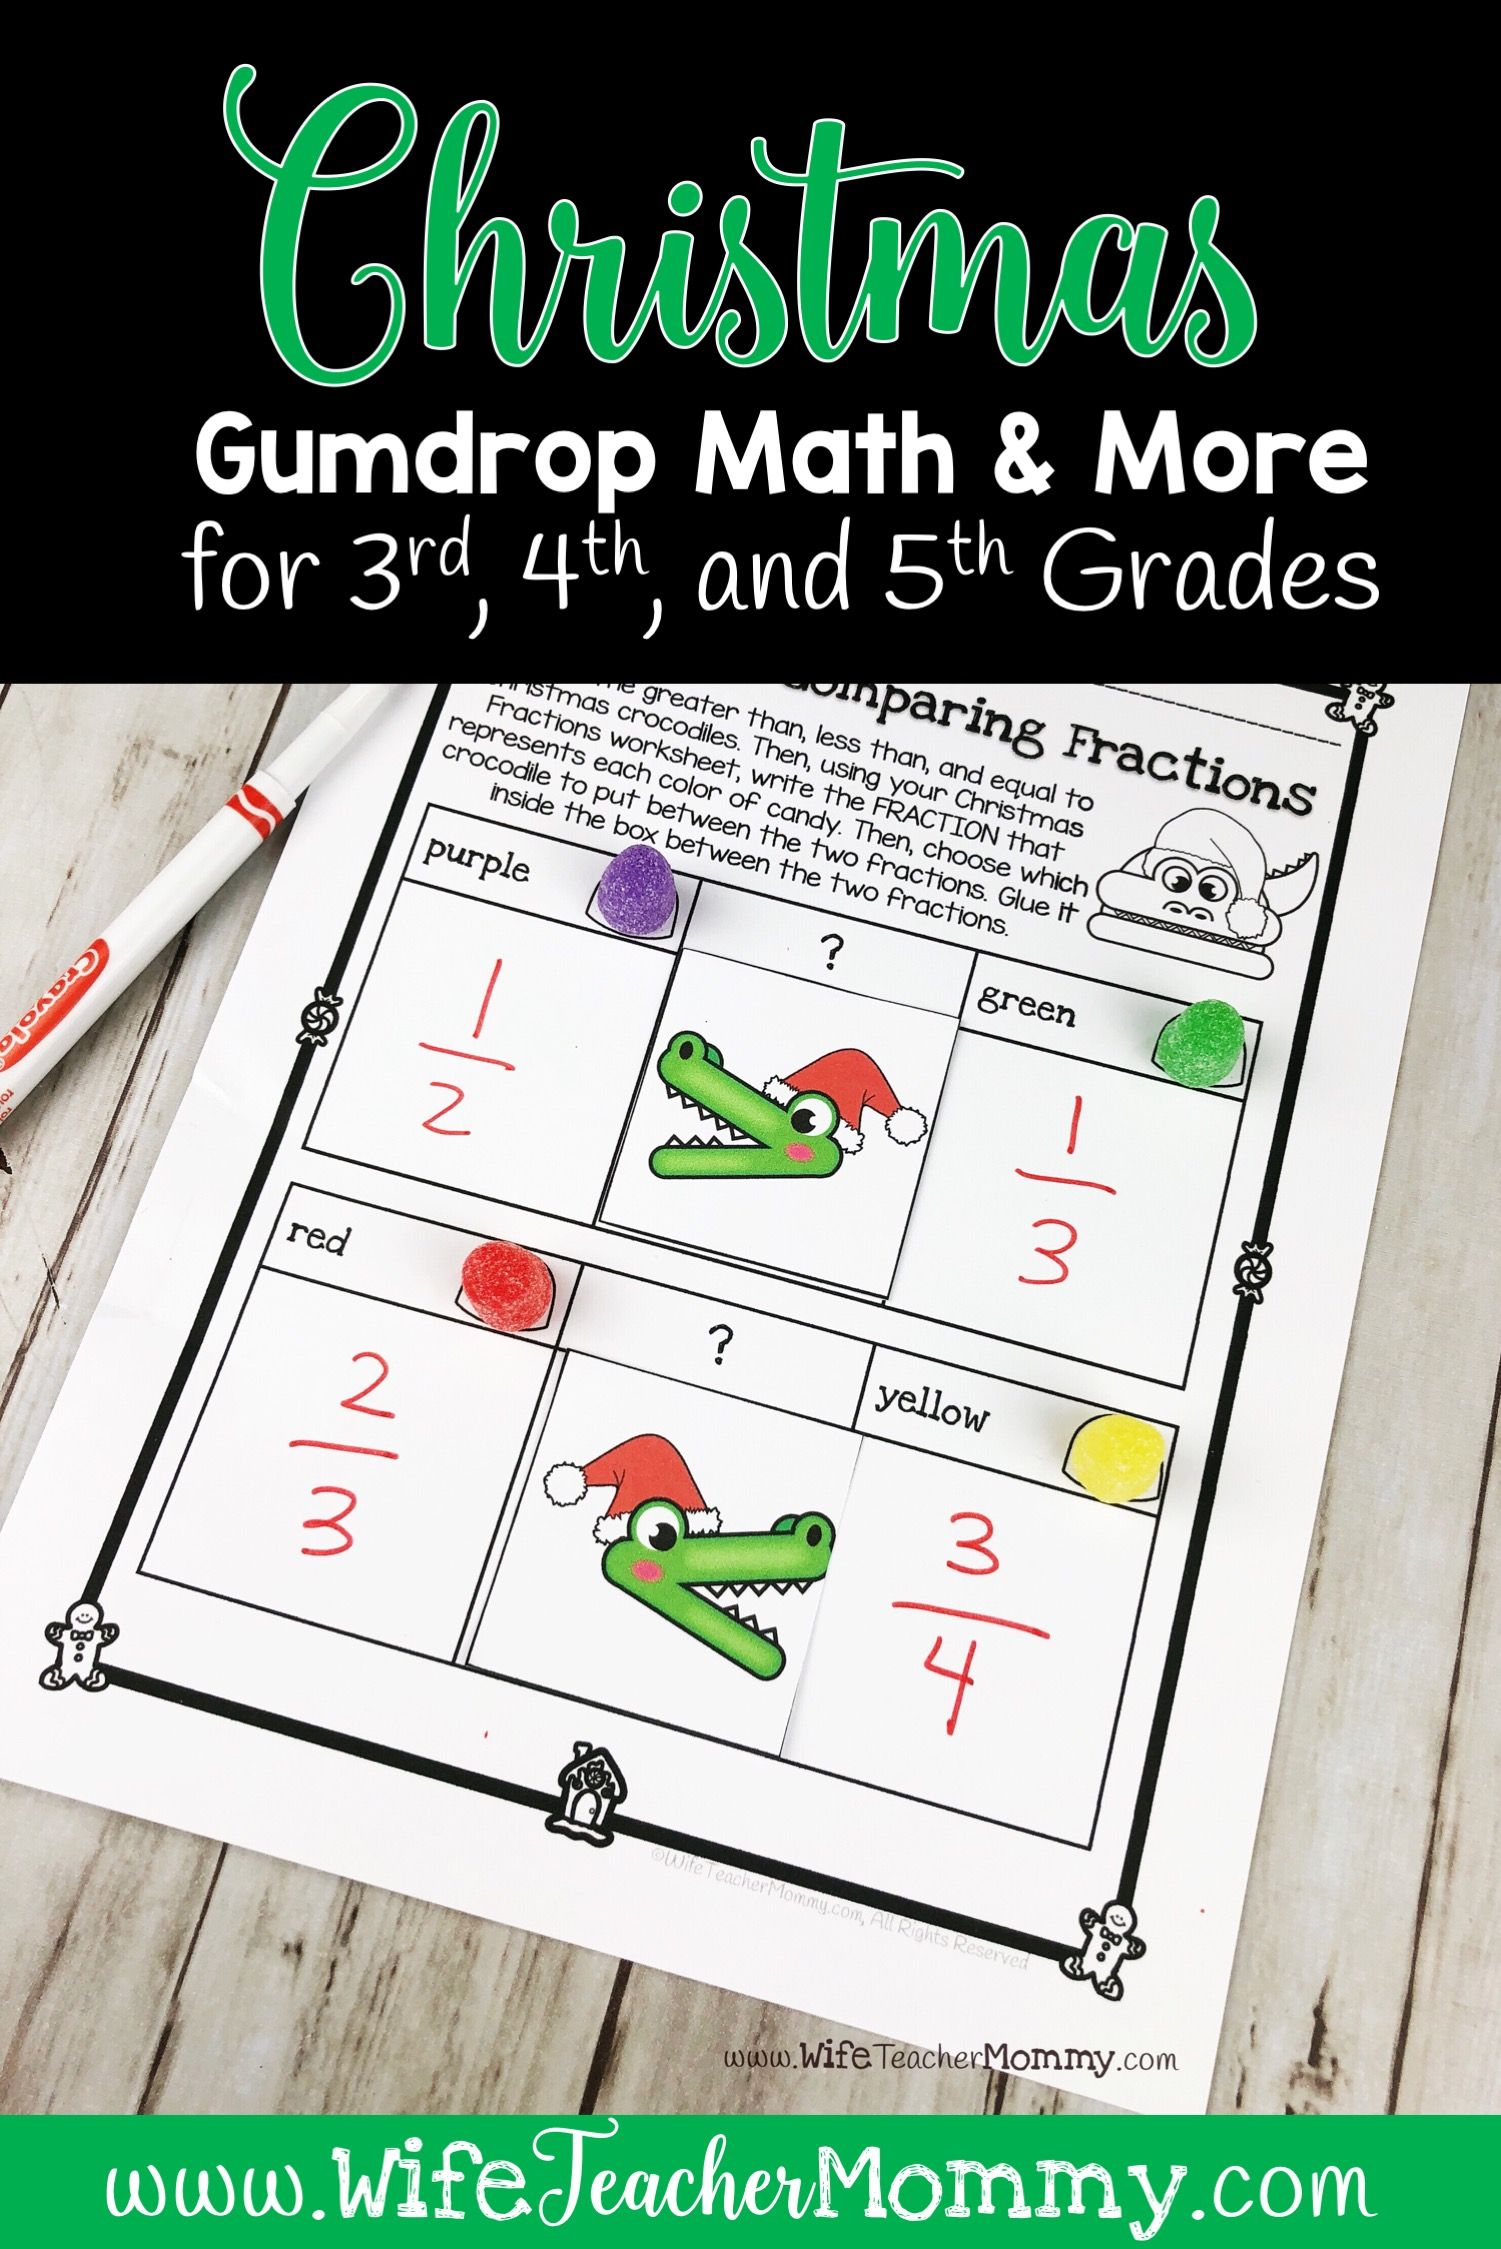 Christmas Gumdrop Math Activities More For 3rd 4th 5th Grade Wife Teacher Mommy Christmas Worksheets Christmas Math Activities Christmas Math Worksheets